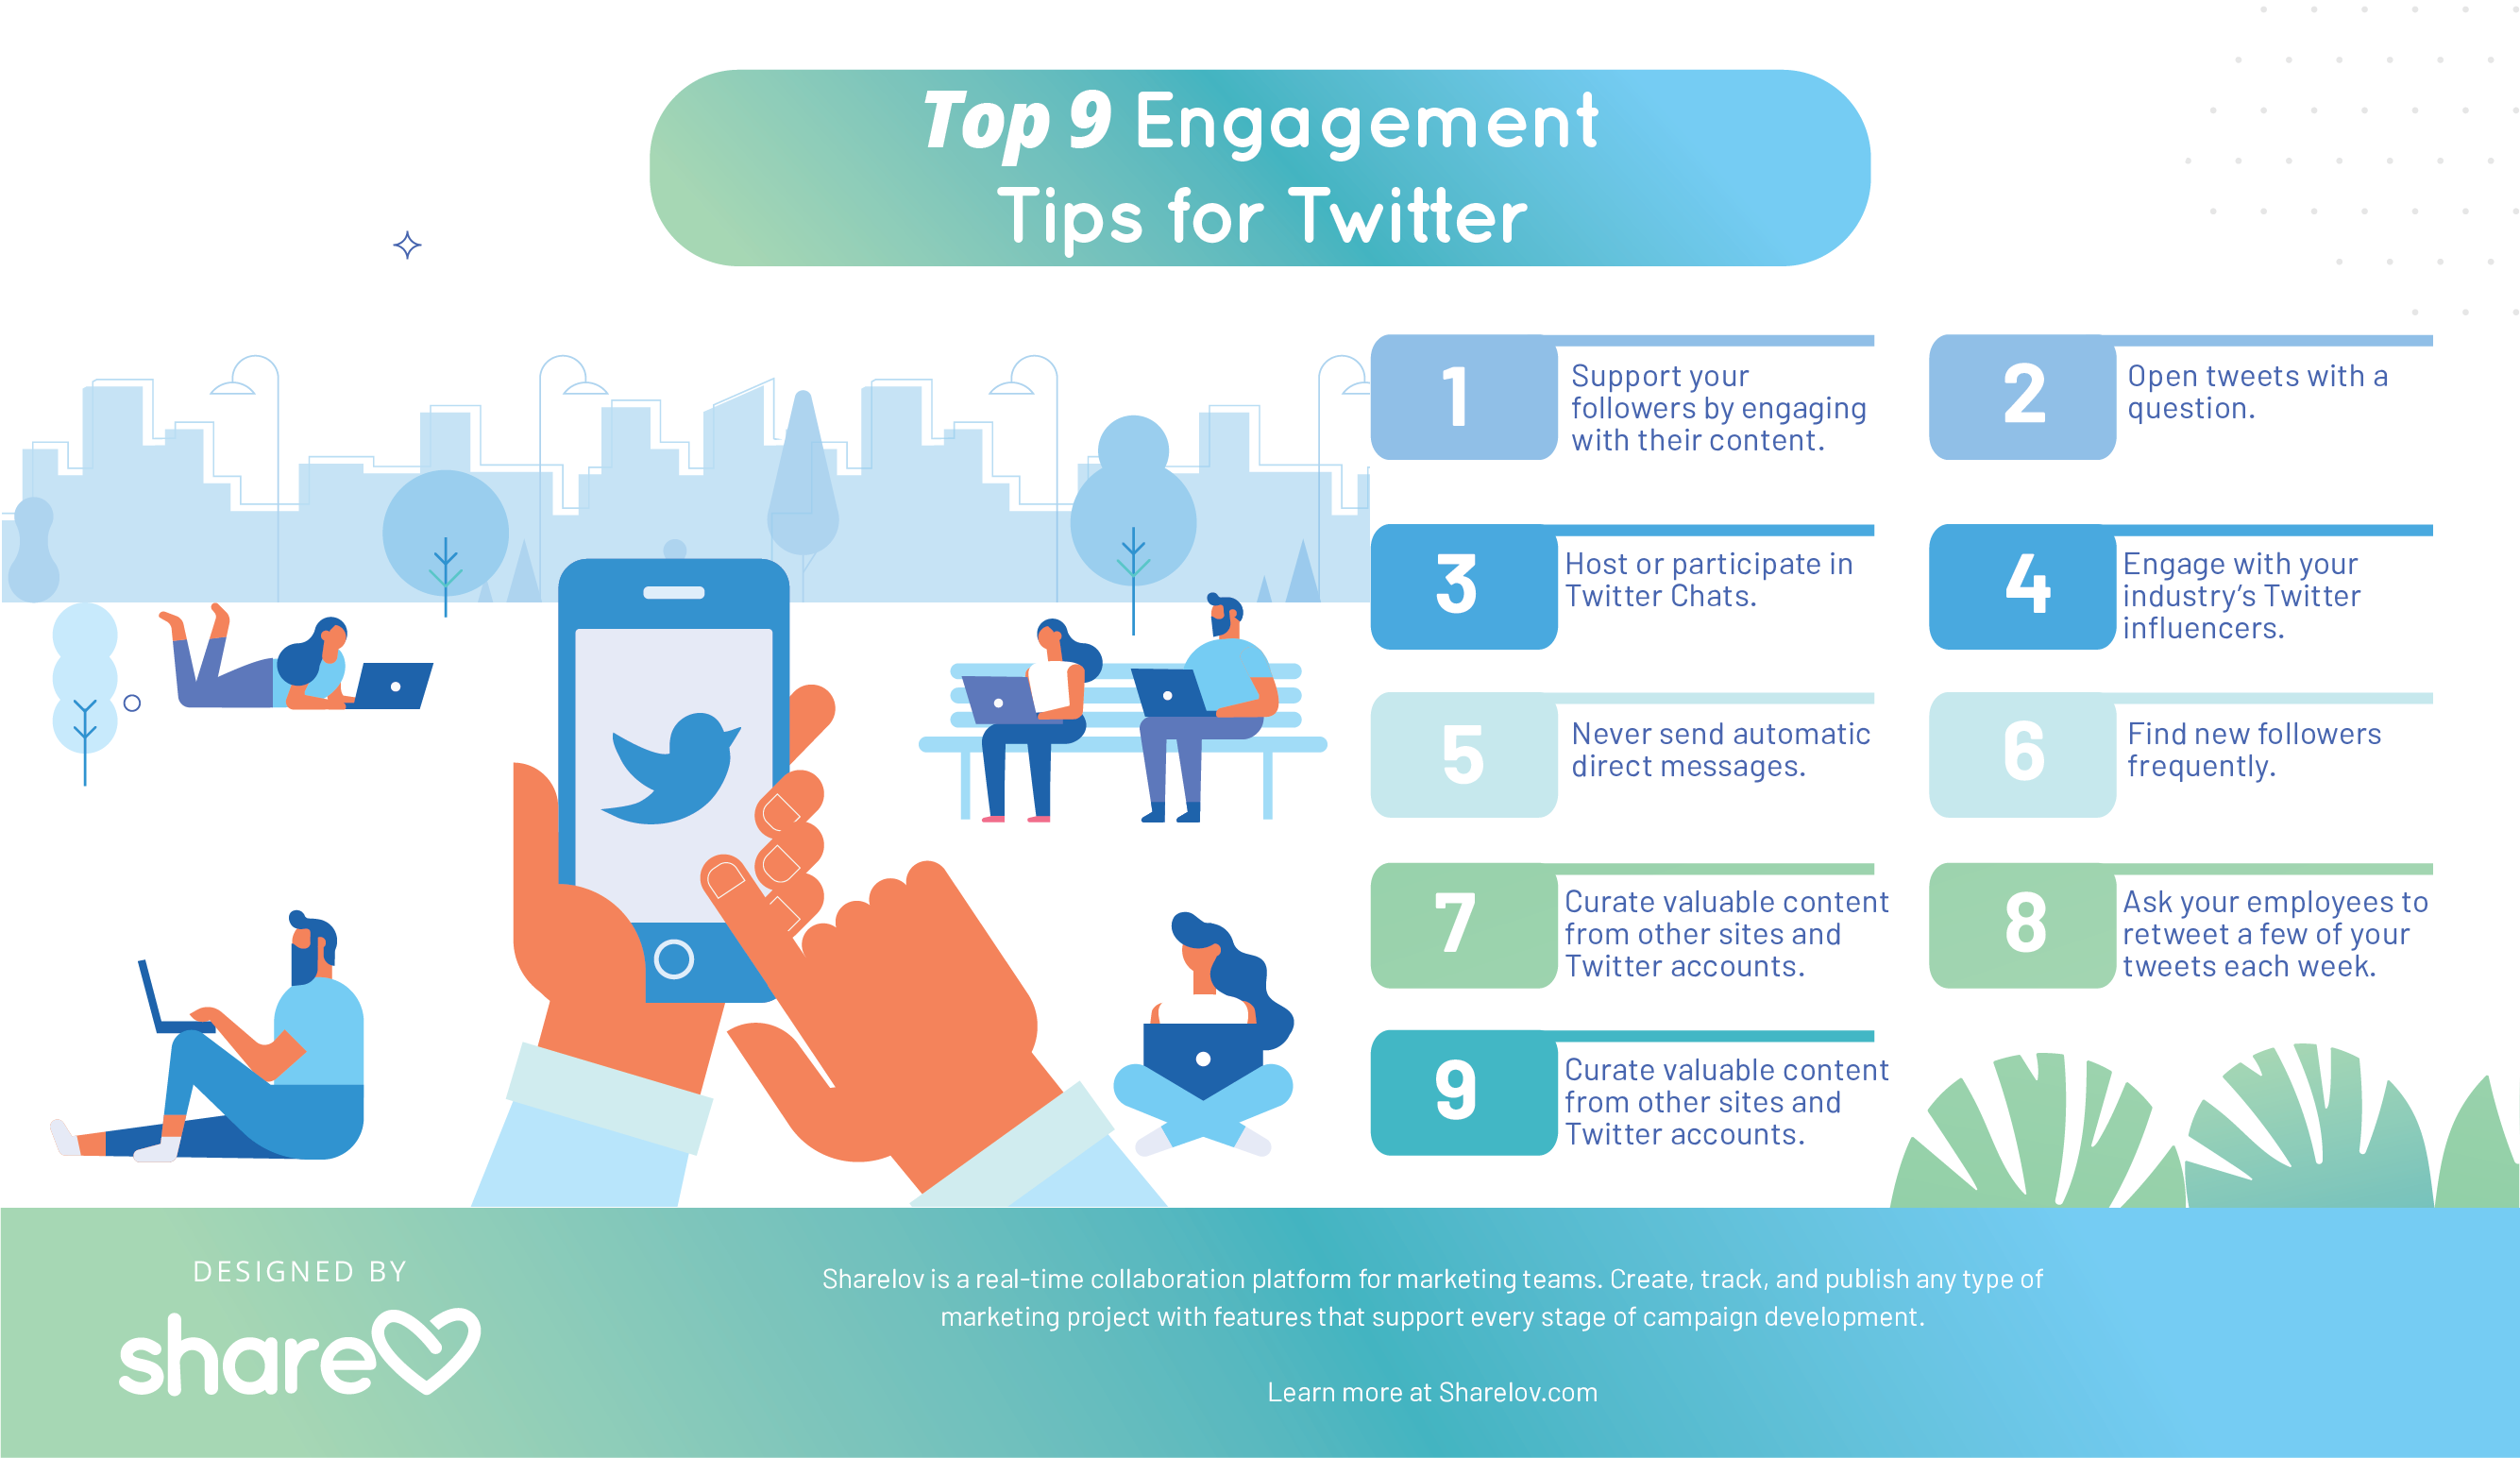 9 Top Engagement Tips for Twitter